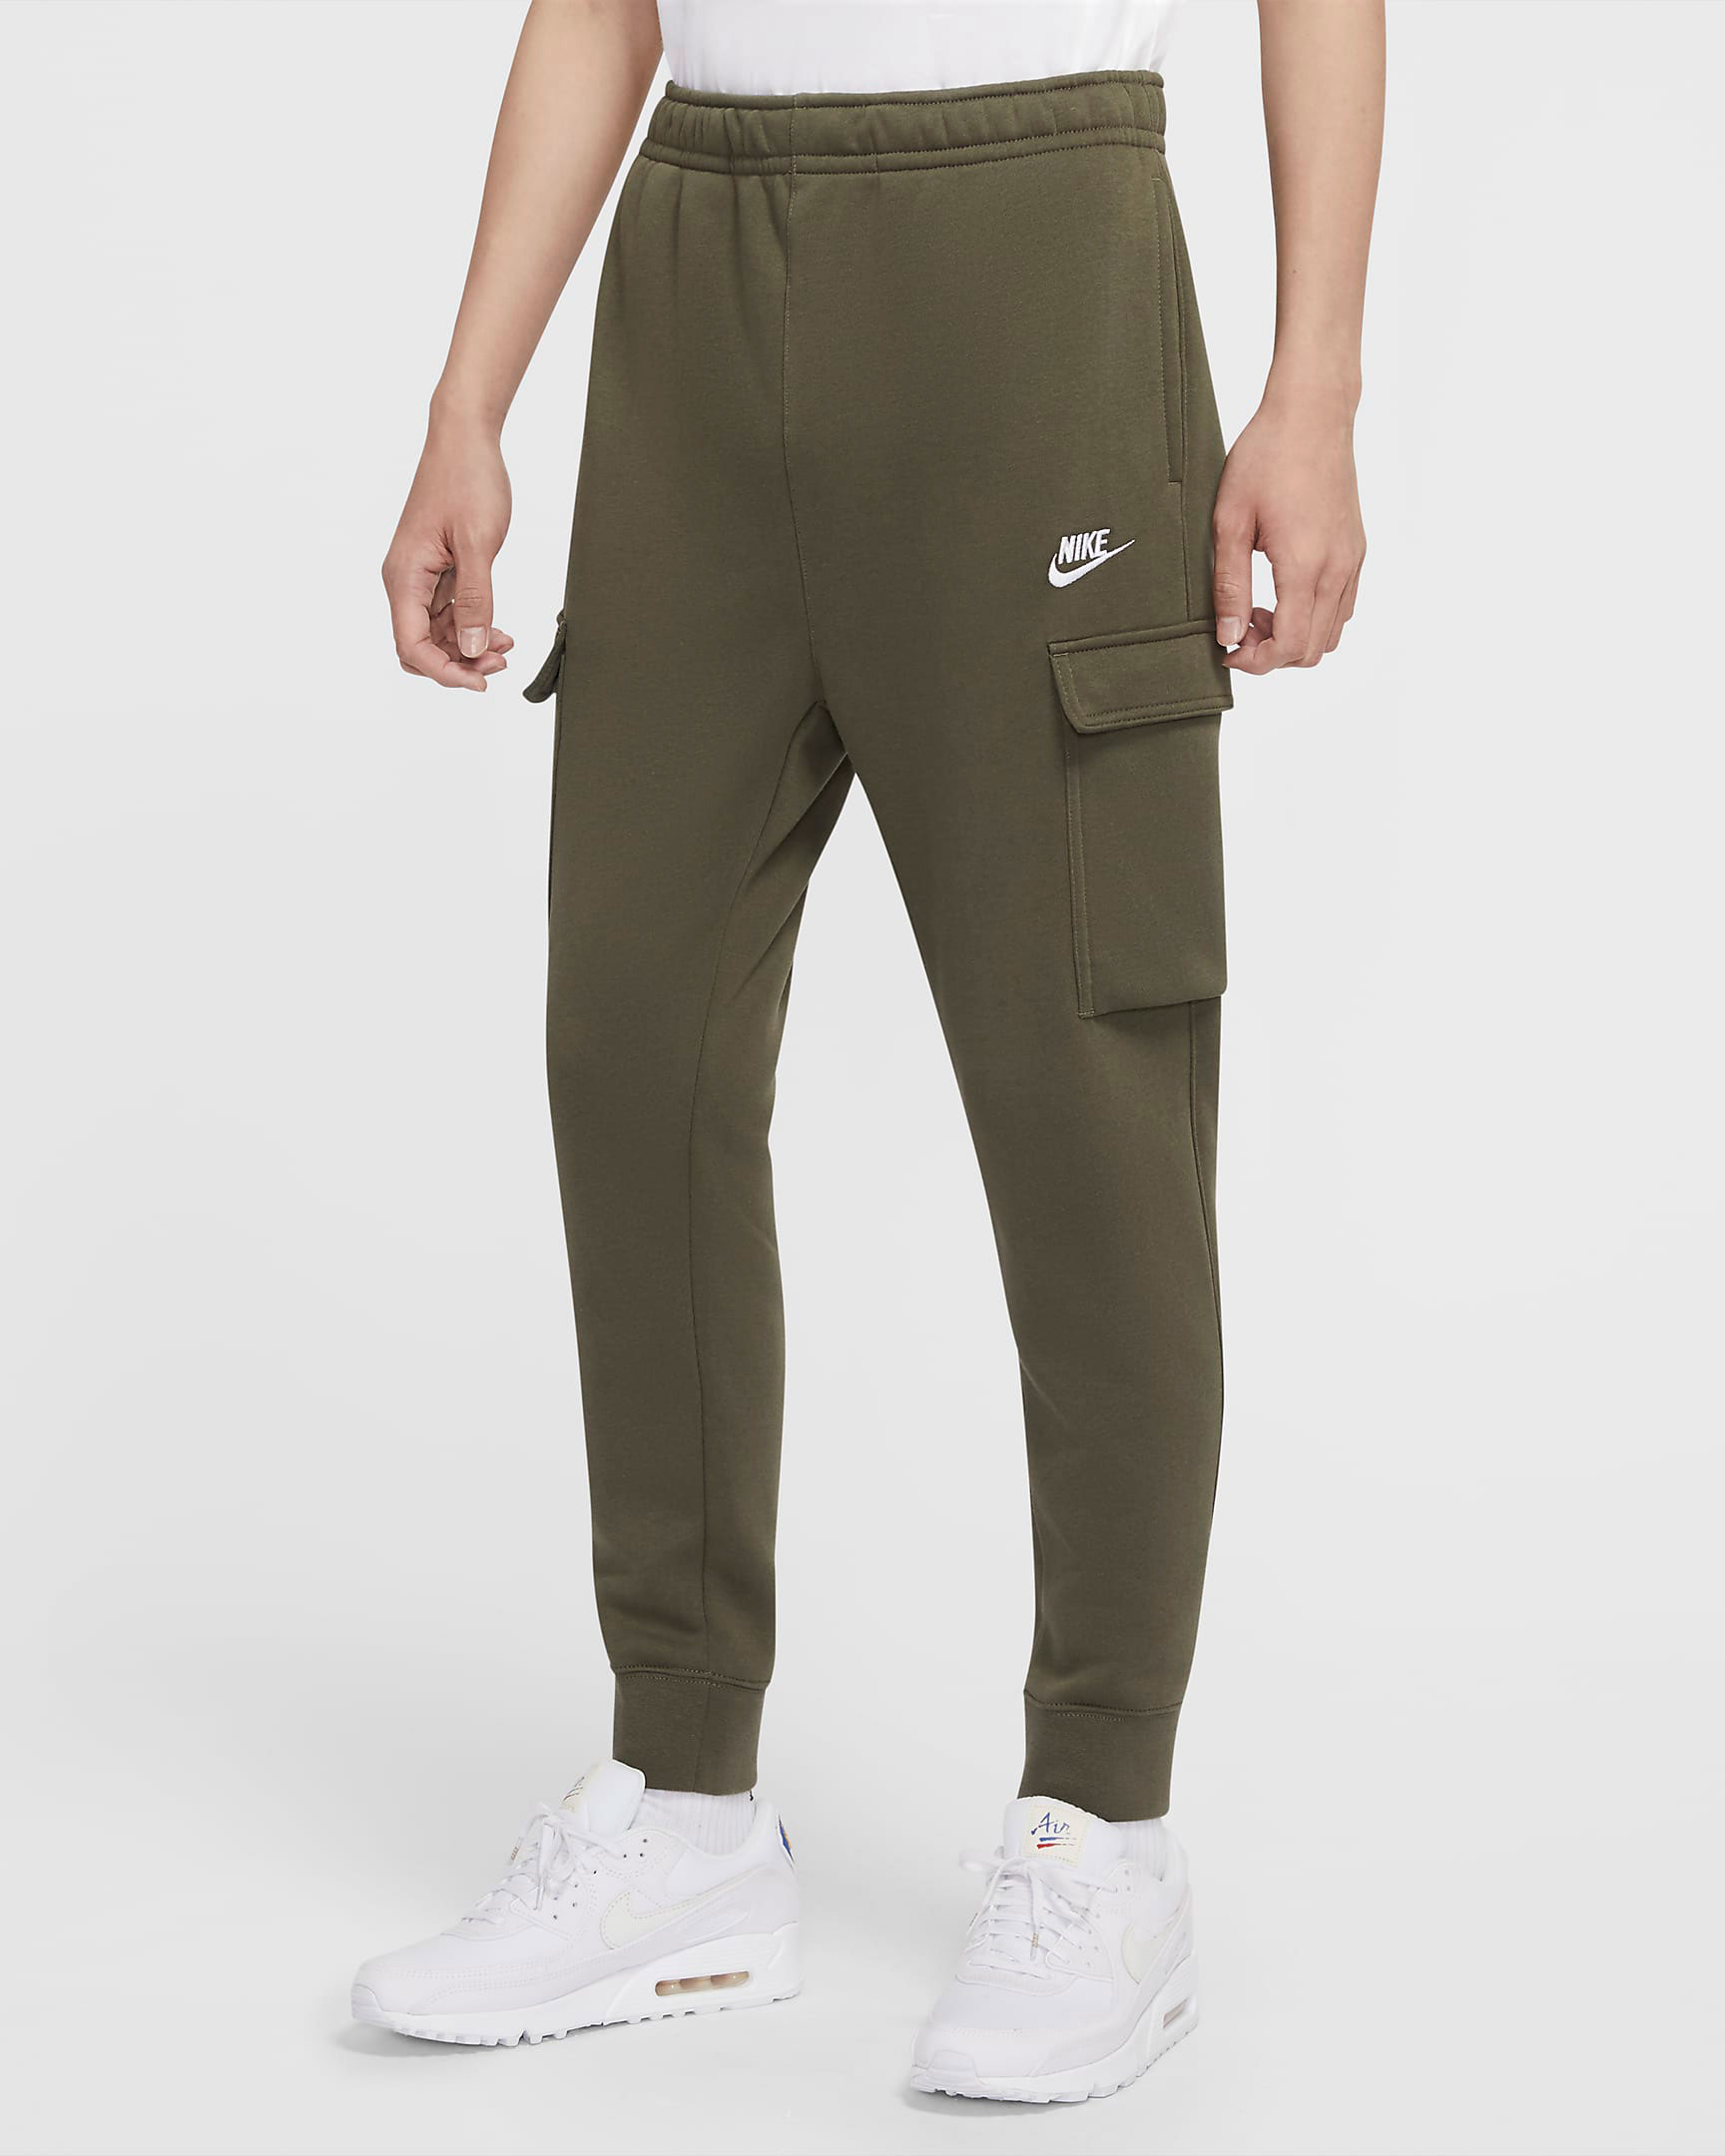 nike-sportswear-club-fleece-cargo-pants-twilight-marsh-olive-green